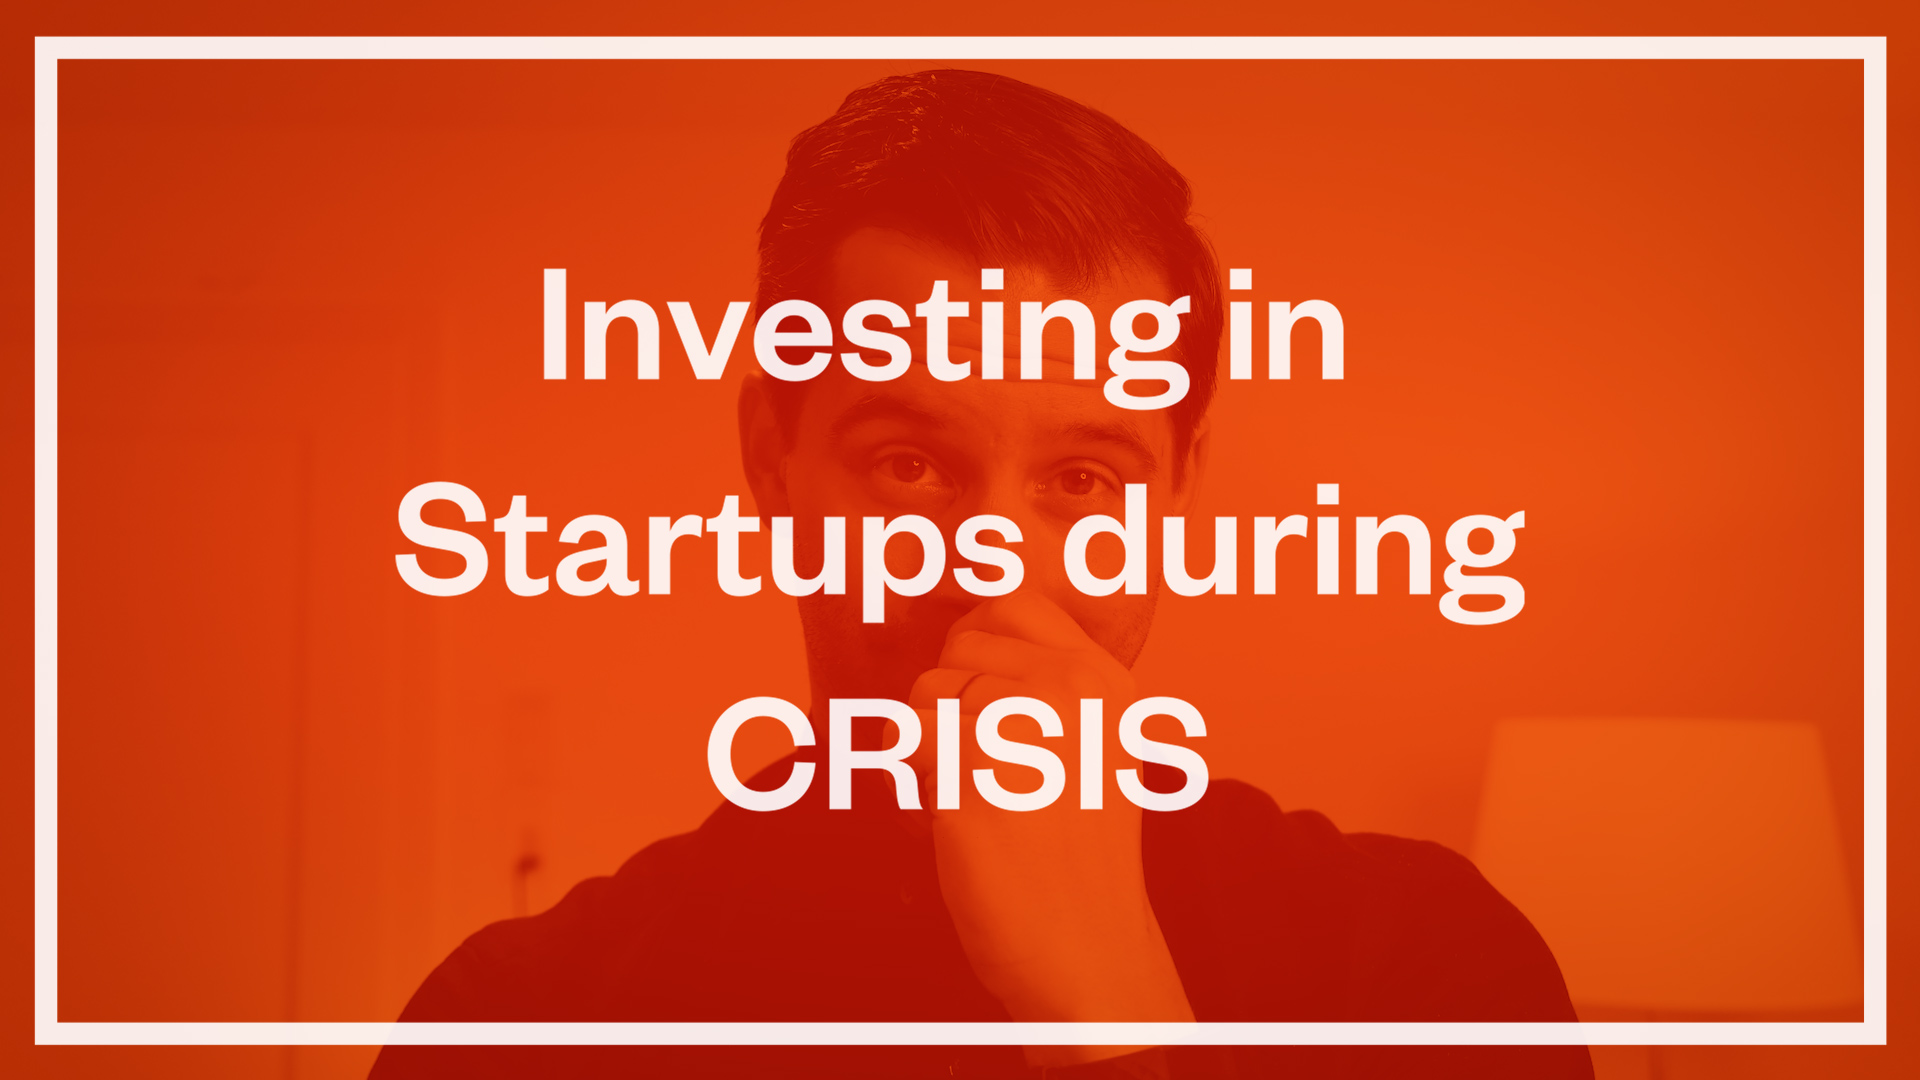 Investing in Startups during CRISIS